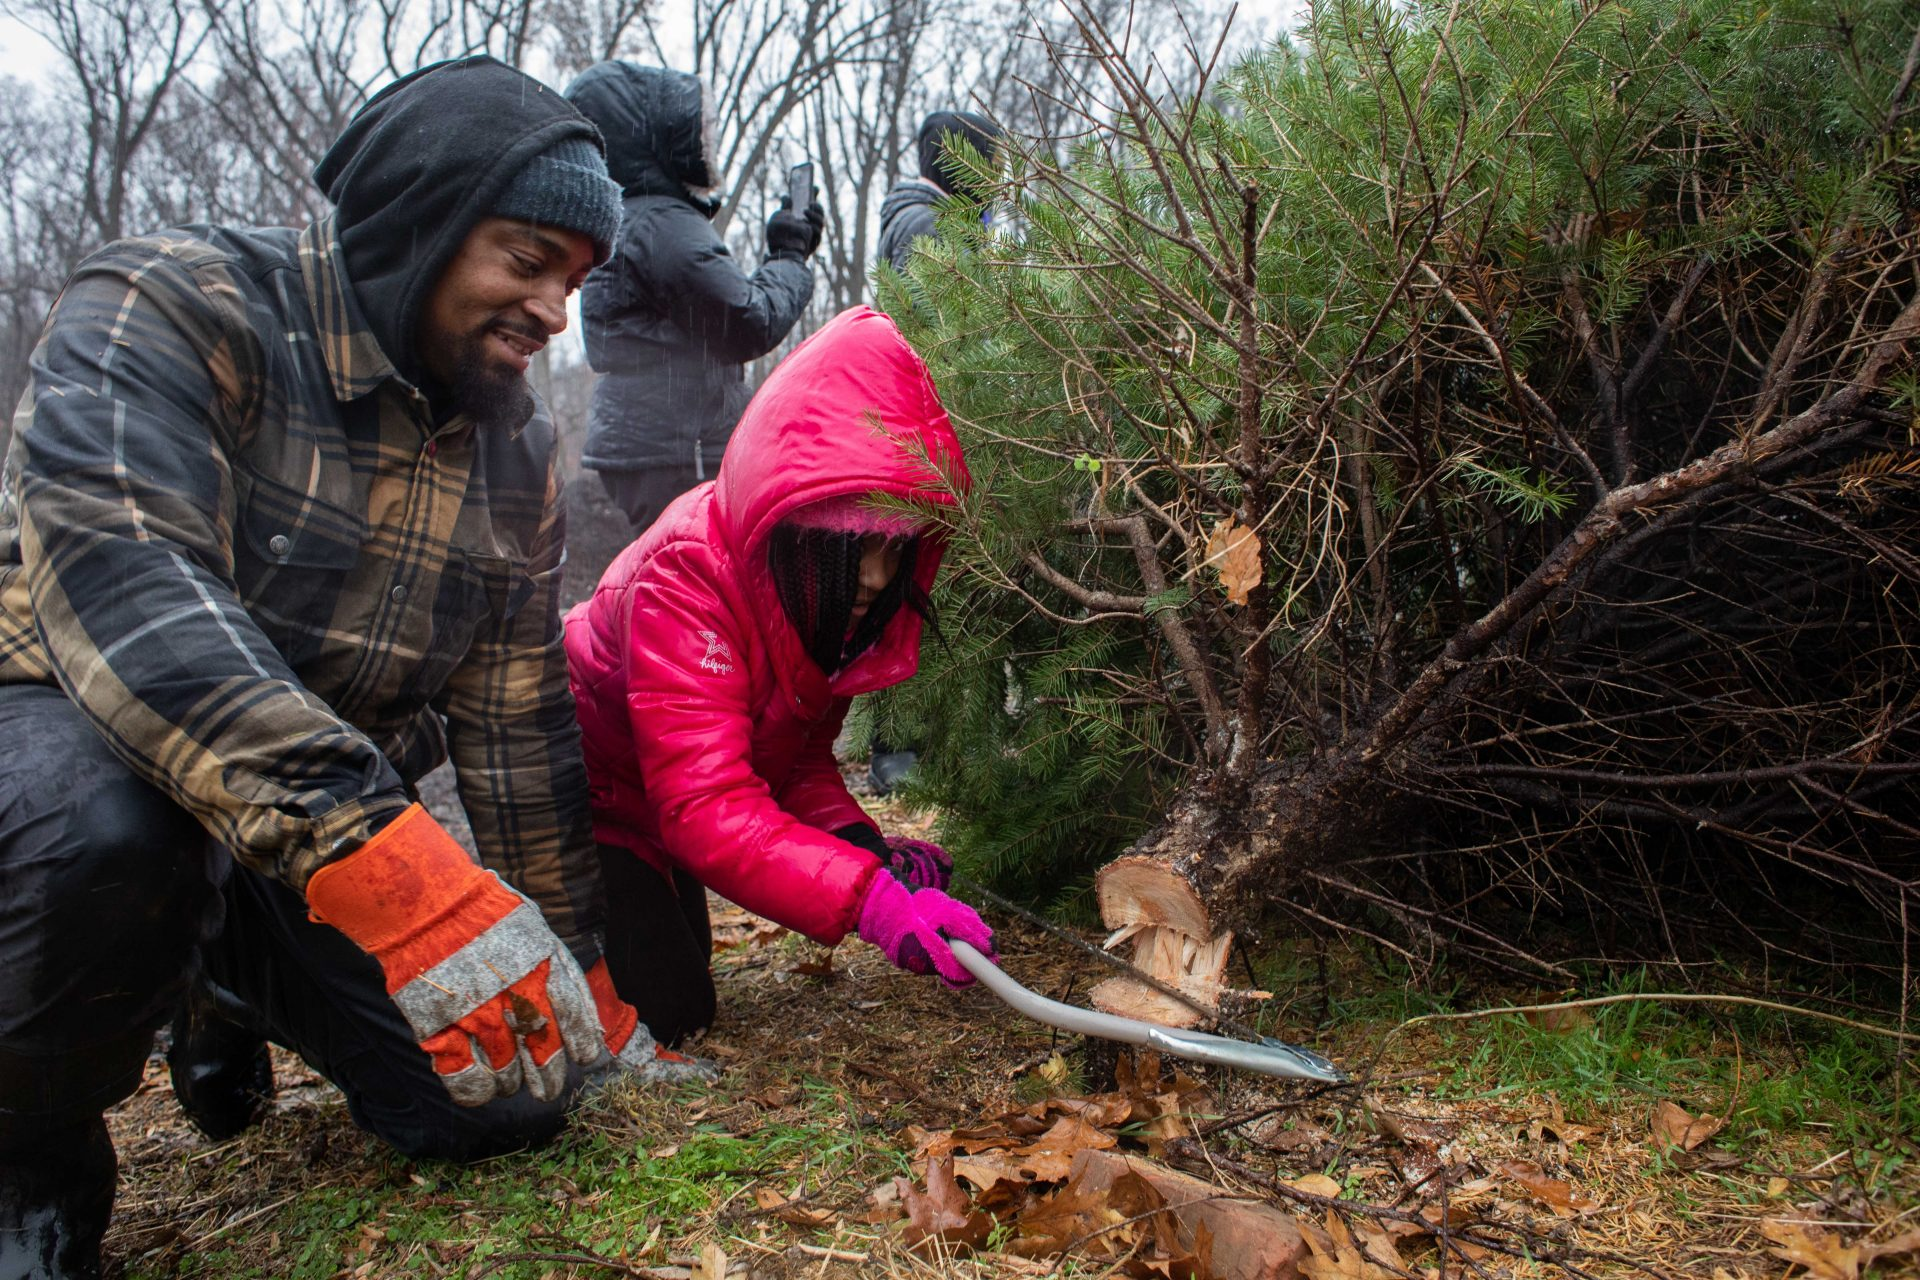 Gabbi Lynard (right), age 9, of Cherry Hill, New Jersey helps her father Anthony Lynard (left) cut down their Christmas tree at Linvilla Orchards in Media, Pennsylvania on Sunday.